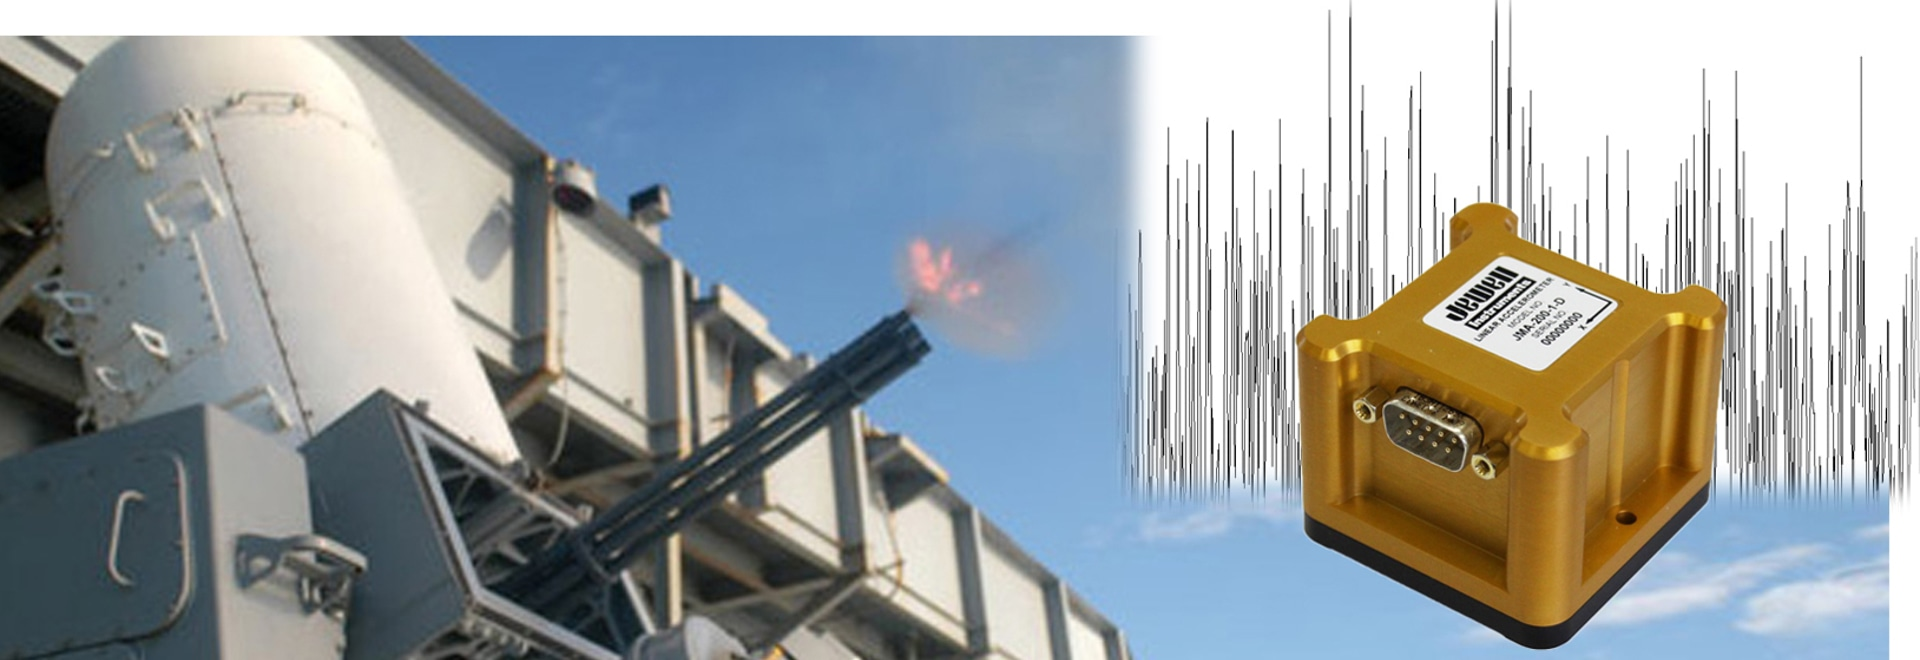 How to Reduce Noise Interference in Sensor Readings